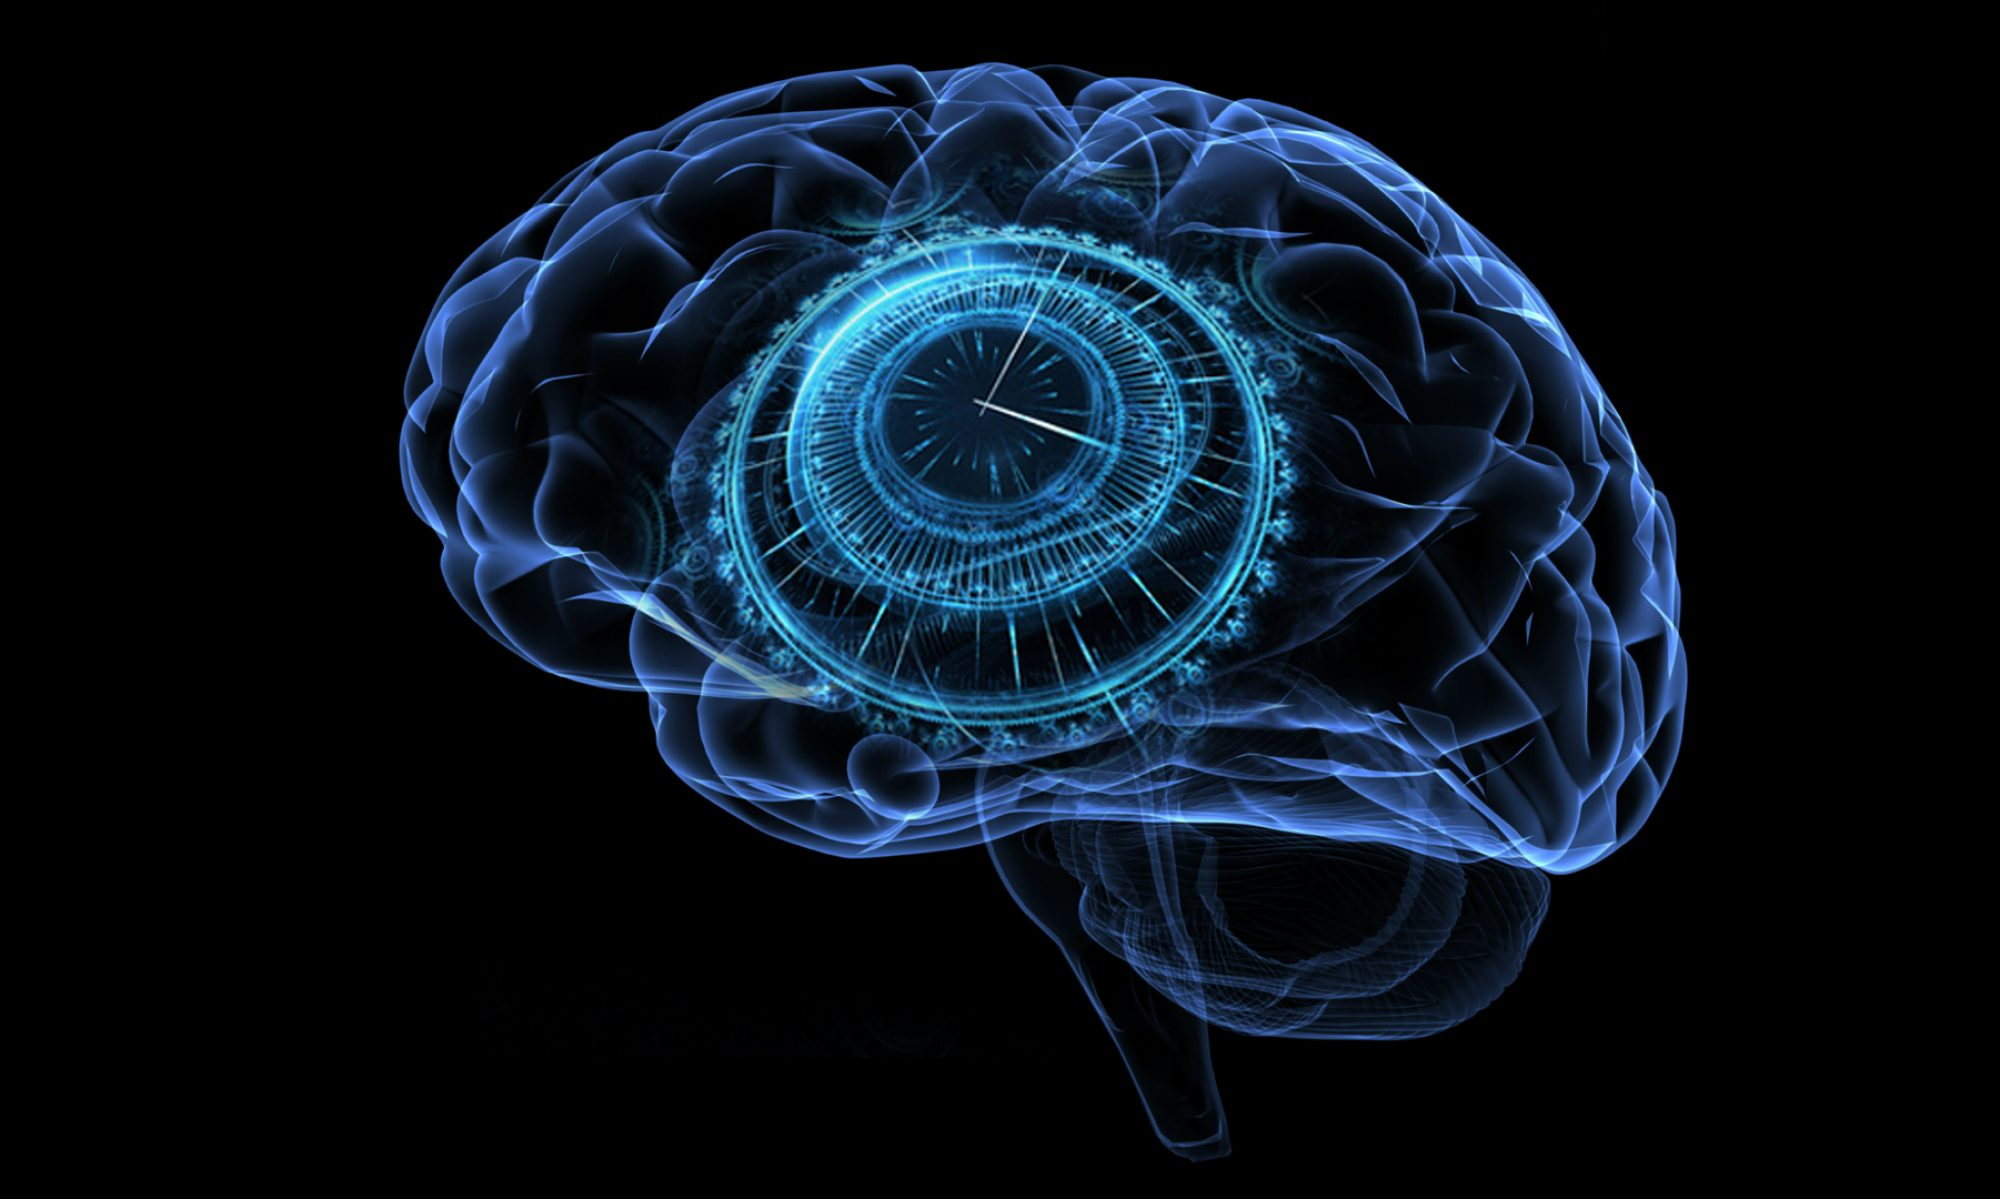 Time in Brain and Behaviour Laboratory